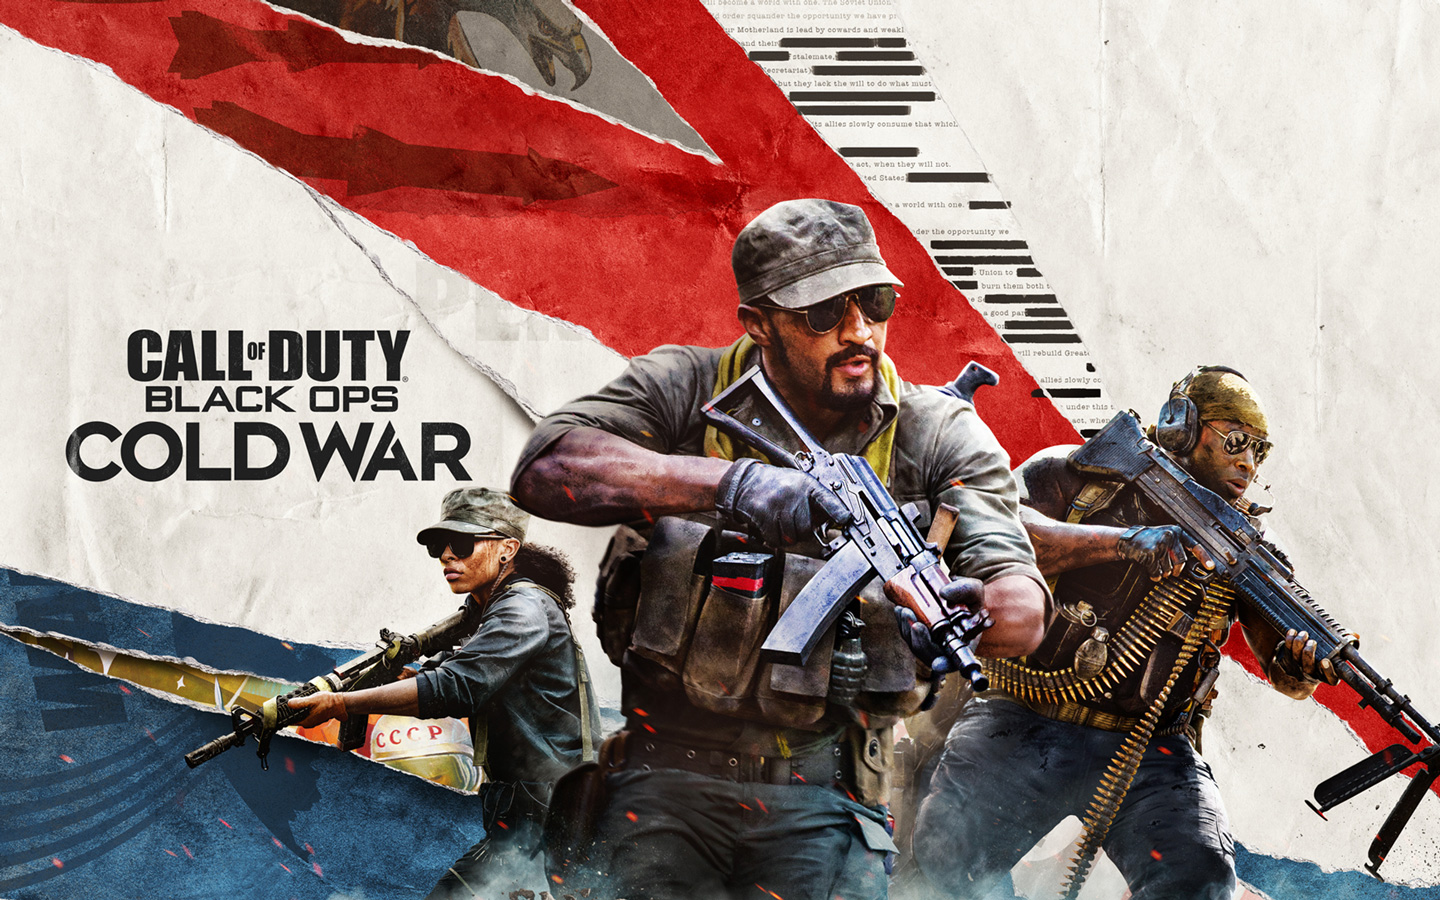 Call of Duty: Black Ops Cold War Wallpaper in 1440x900